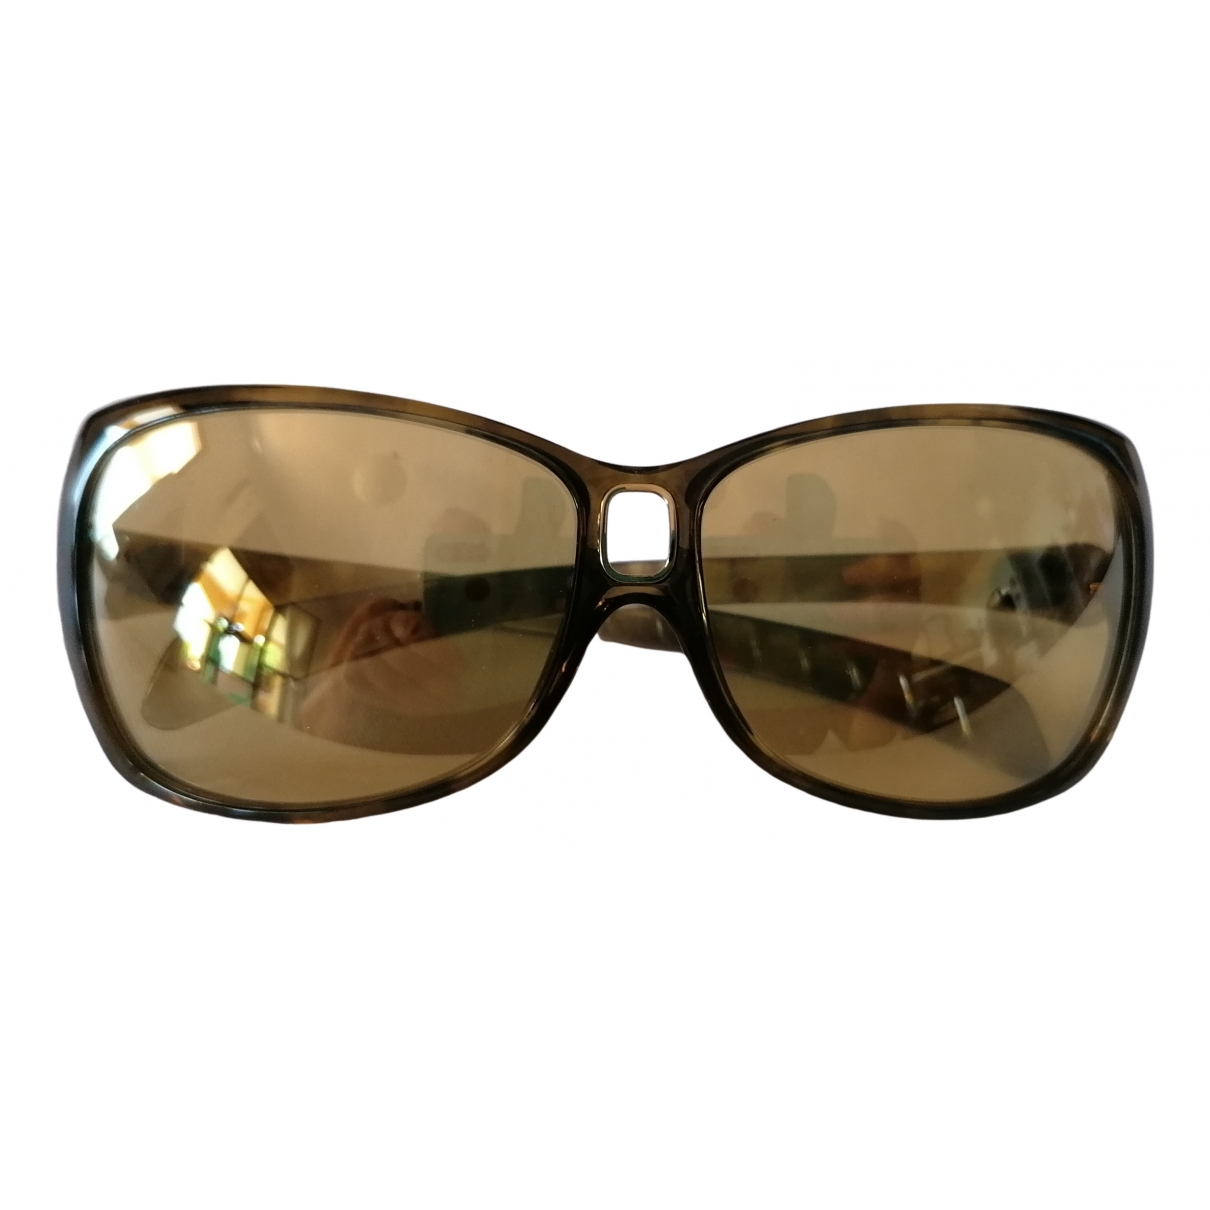 Adidas \N Khaki Sunglasses for Women \N